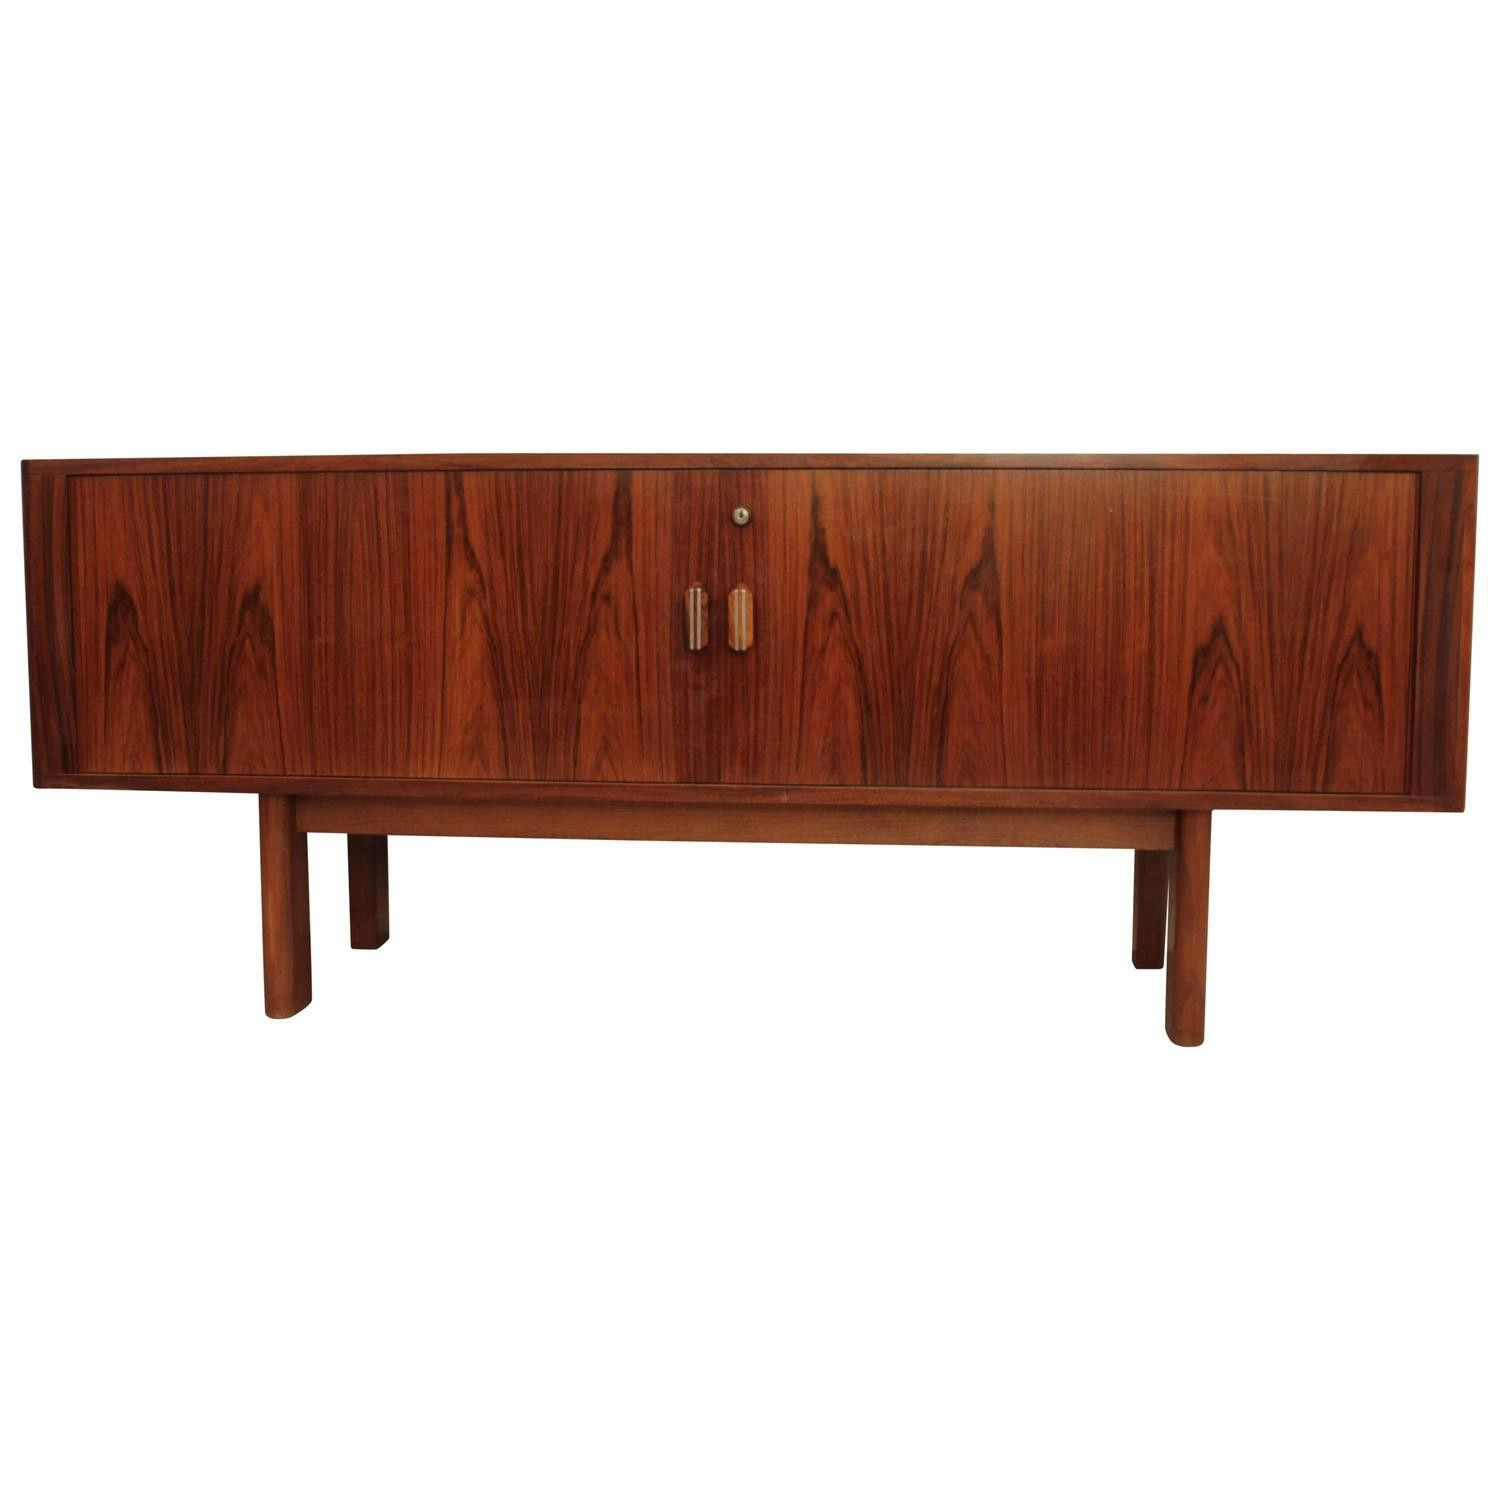 Small sideboard in Rio rosewood by Arne VODDER for Sibast in the